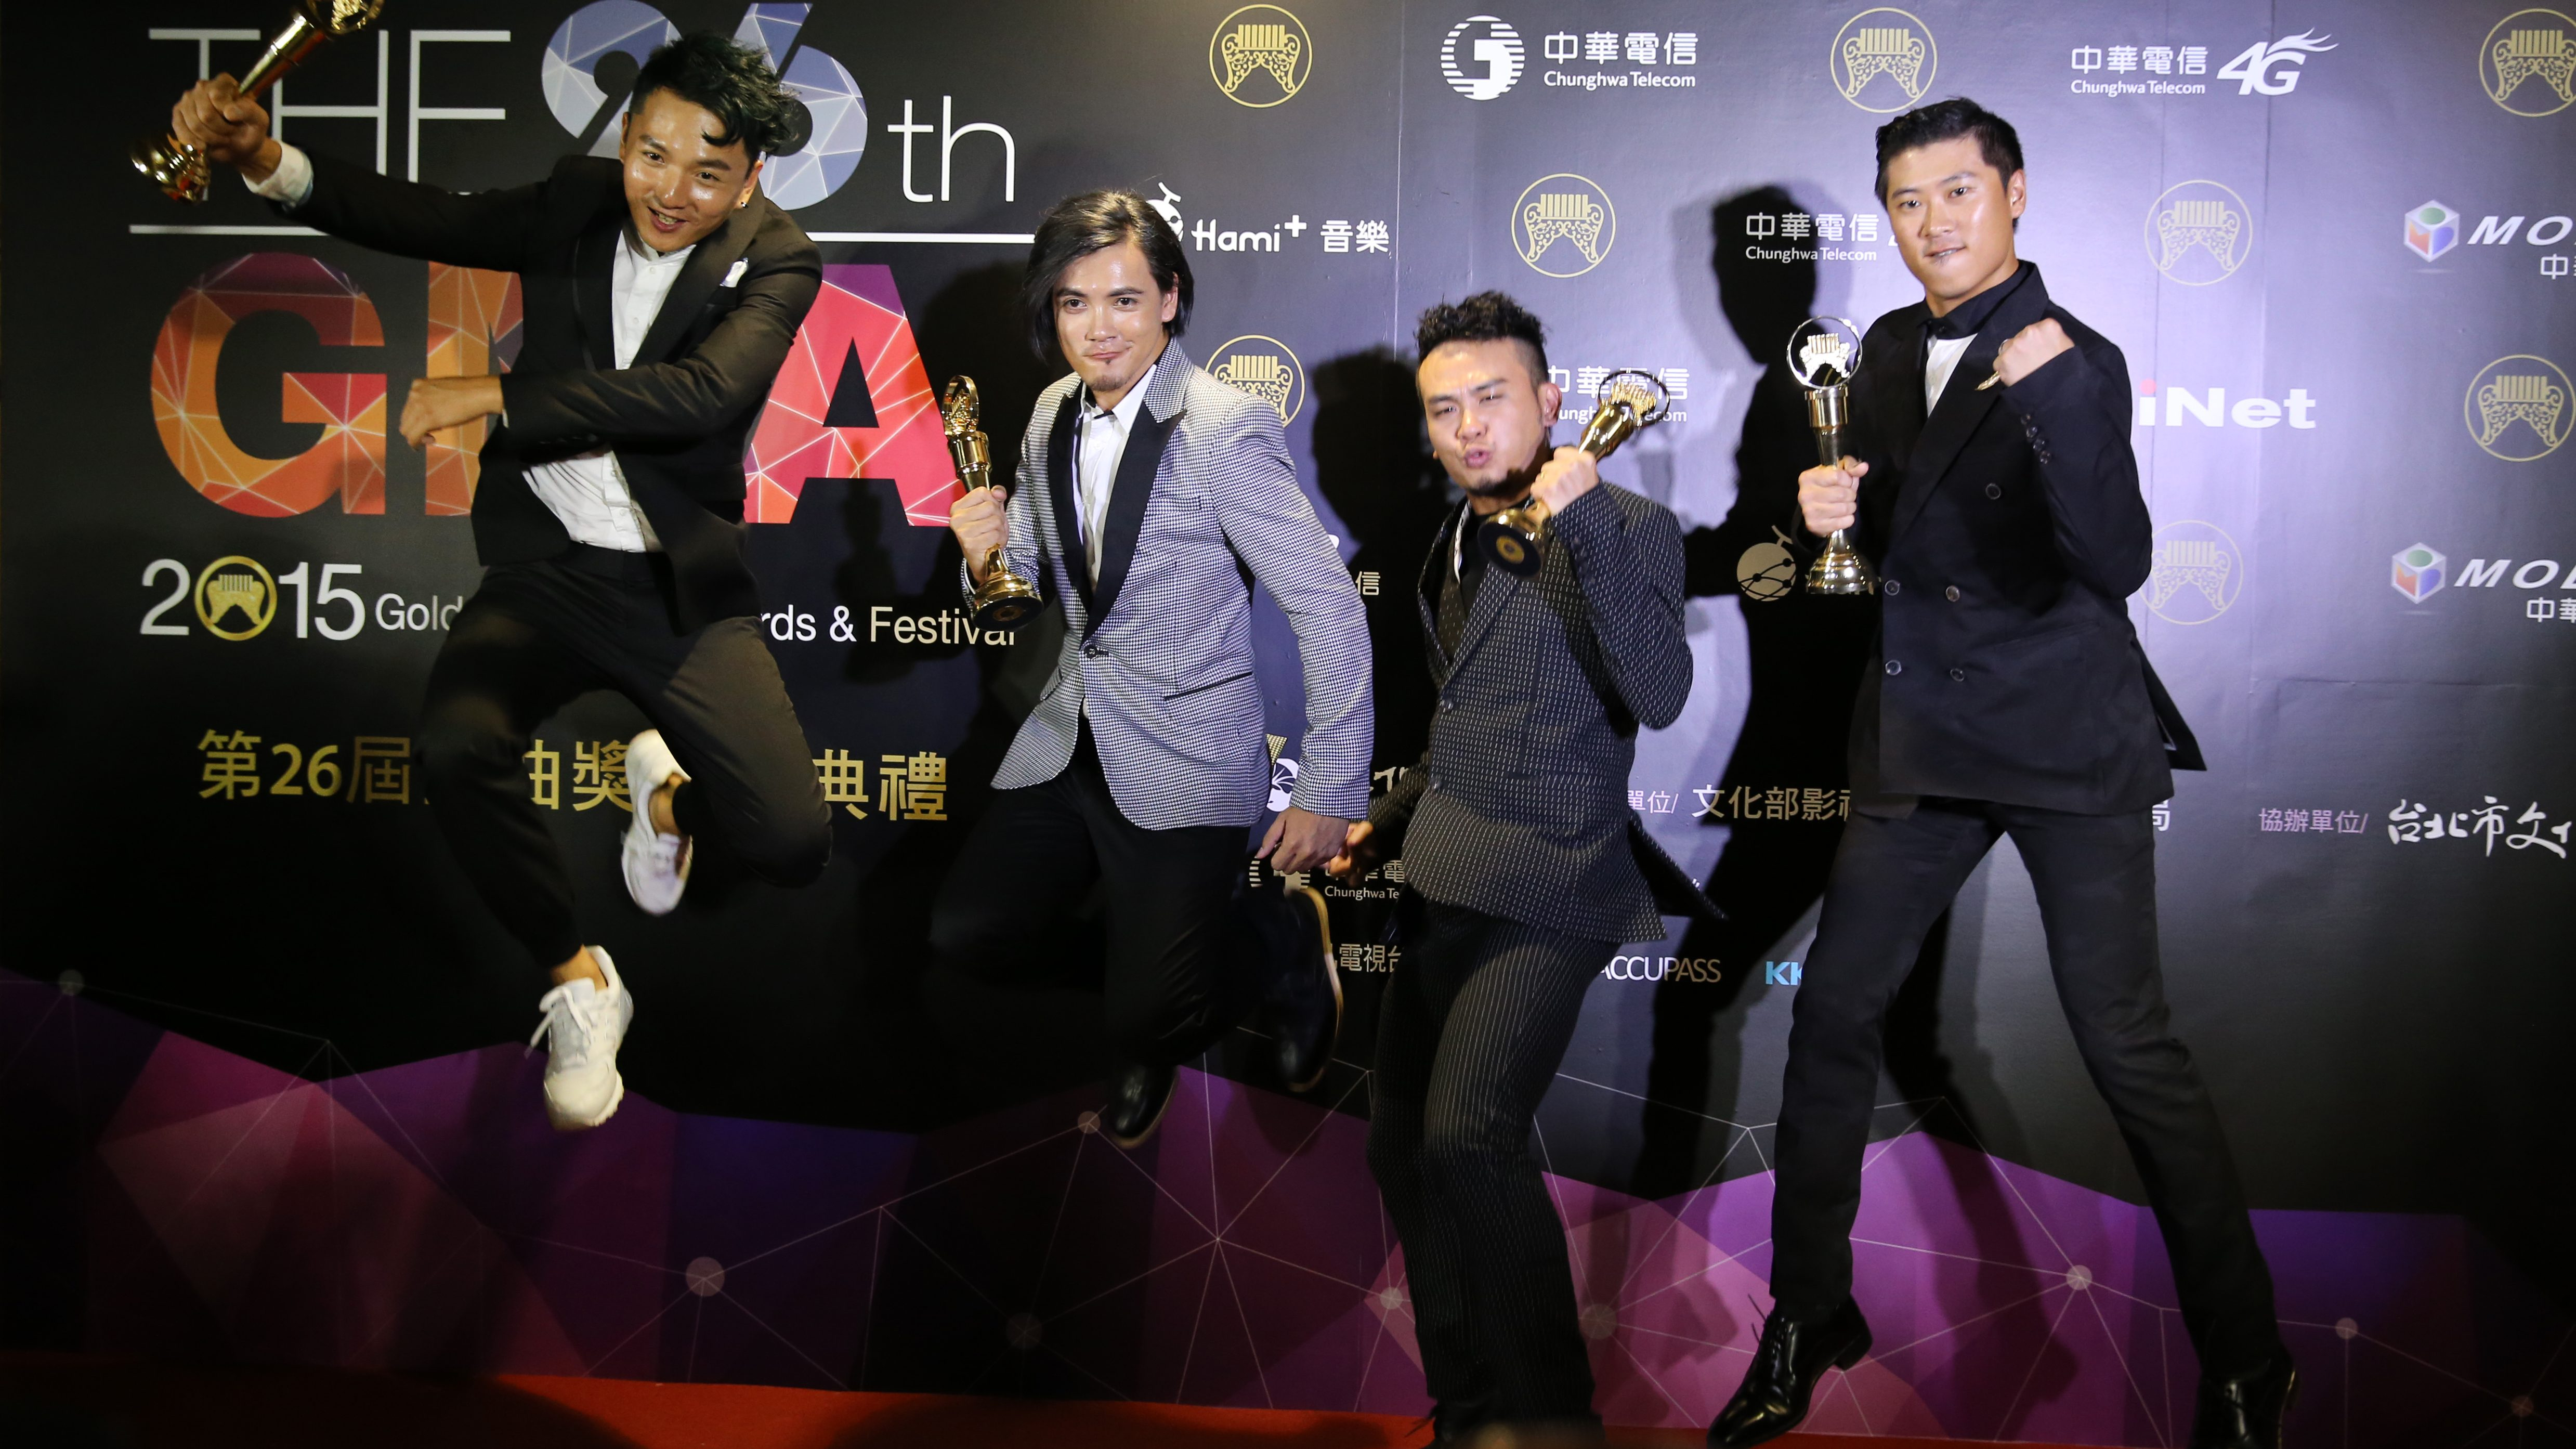 396b0436b11a6 China is scrubbing outspoken Taiwan and Hong Kong celebrities from its  streaming services